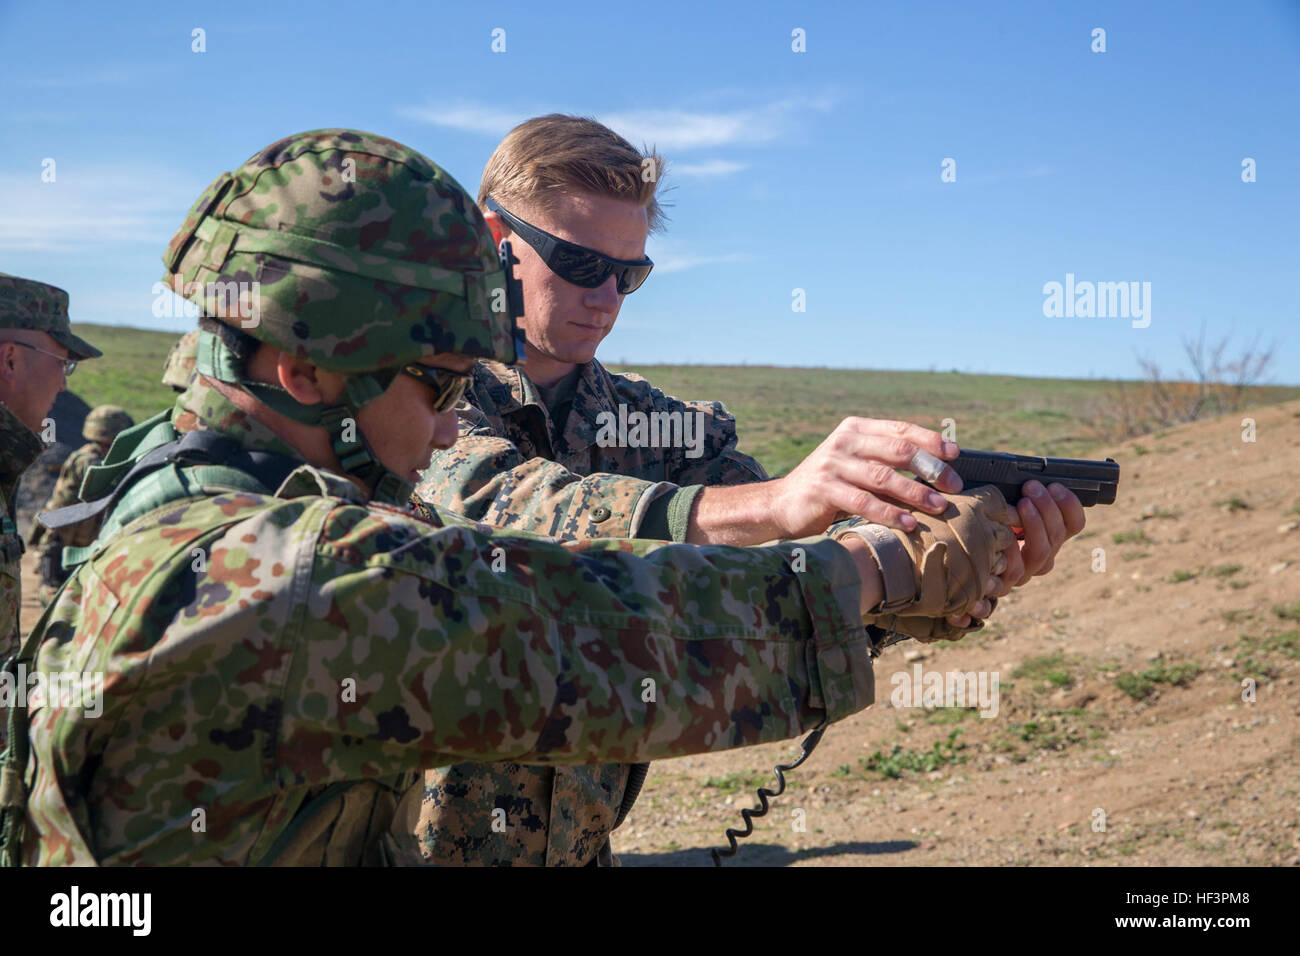 united states marine corps sgt mason wilhelmy scout sniper instructor 1st marine division schools assists a soldier of the japan ground self defense